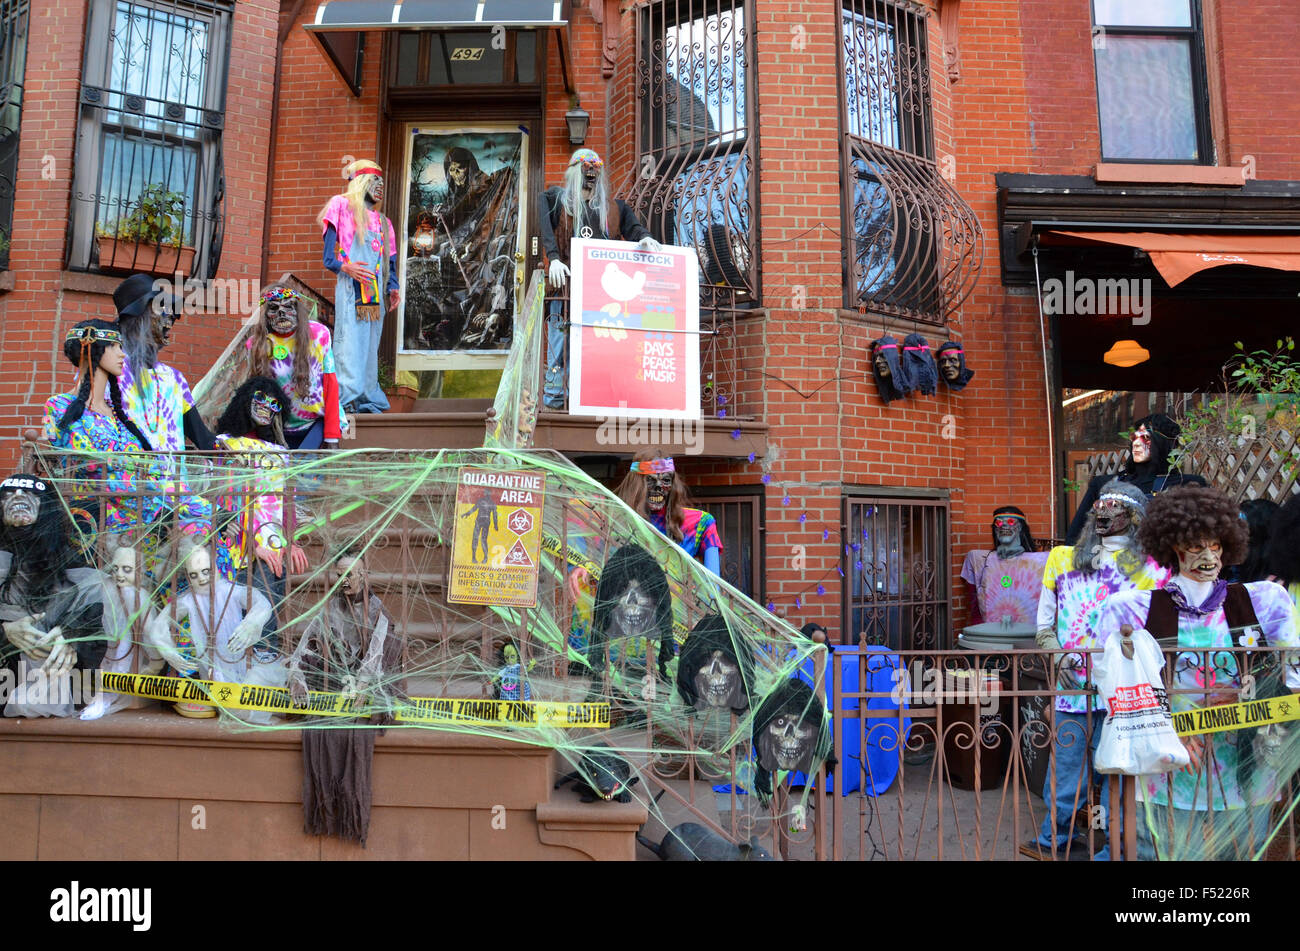 stock photo halloween decorations brooklyn park slope new york pumpkins for sale outside shop - Halloween Decorations Sale